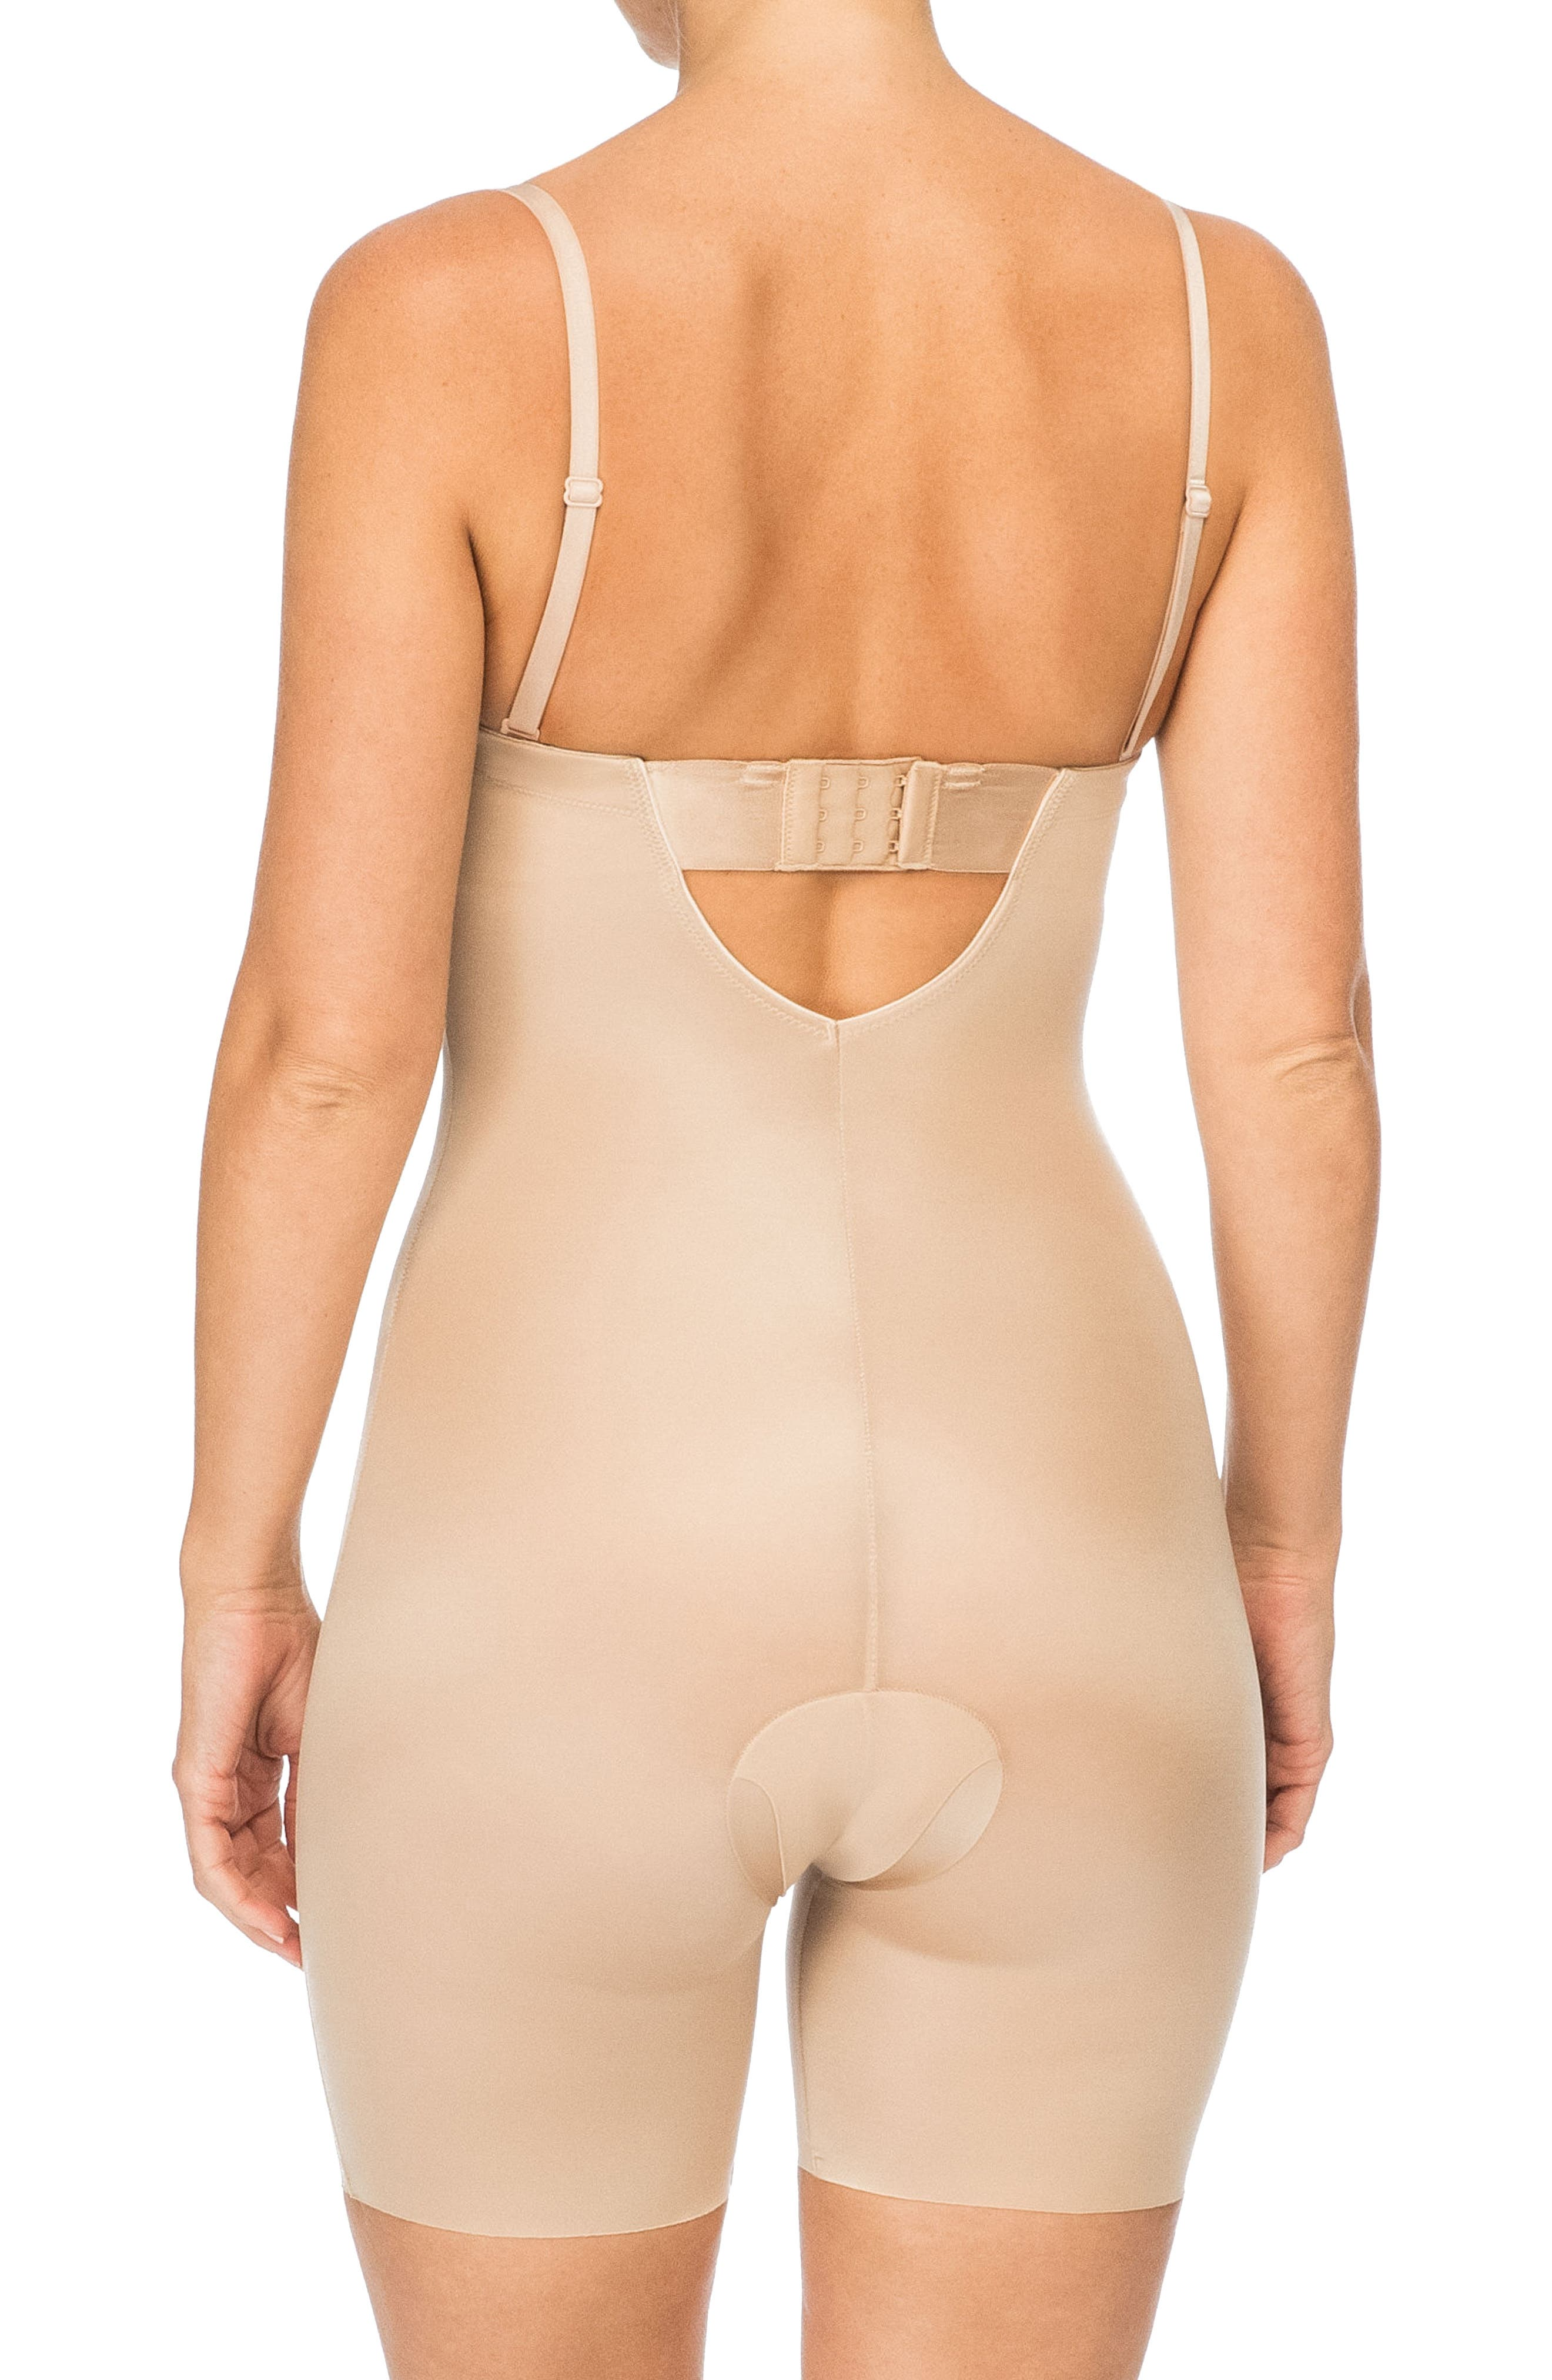 Suit Your Fancy Strapless Cupped Mid-Thigh Shaper Bodysuit,                             Alternate thumbnail 4, color,                             Champagne Beige